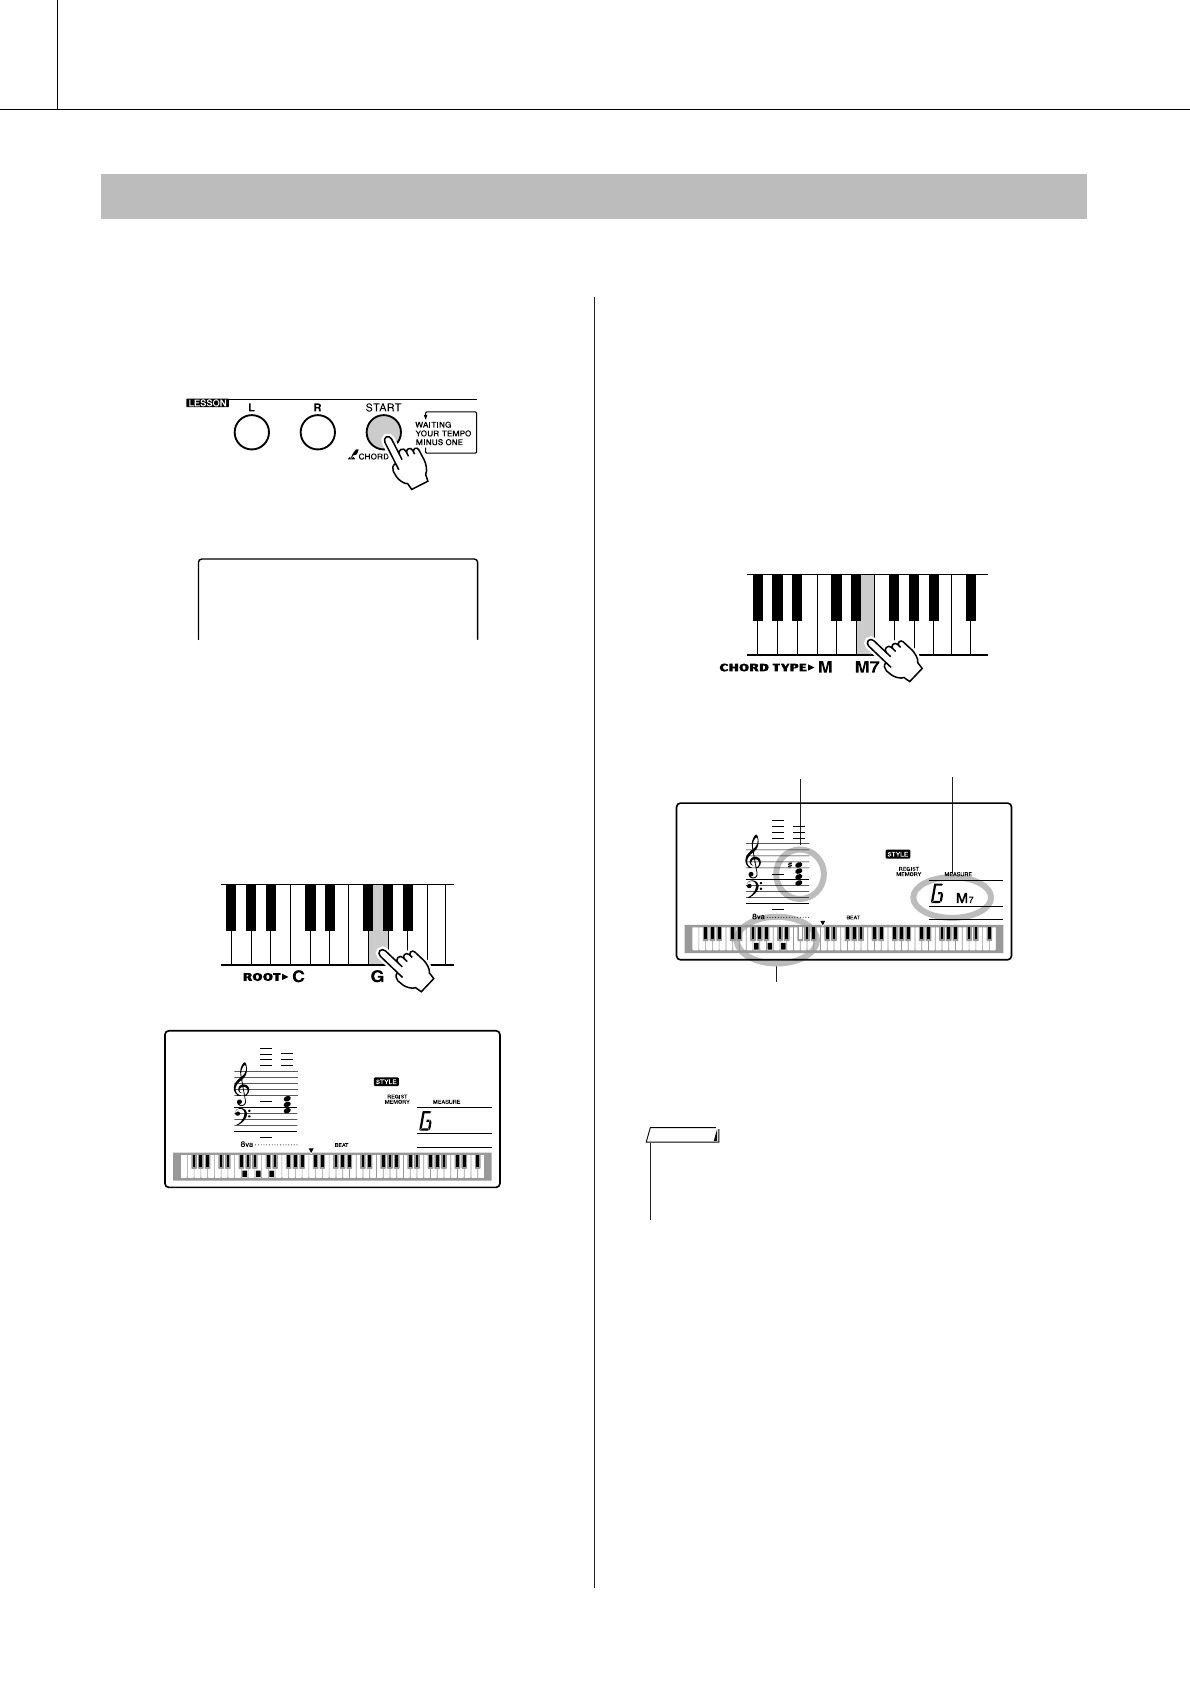 Page 70 of yamaha musical toy instrument ypg 235 user for Yamaha ypg 235 manual